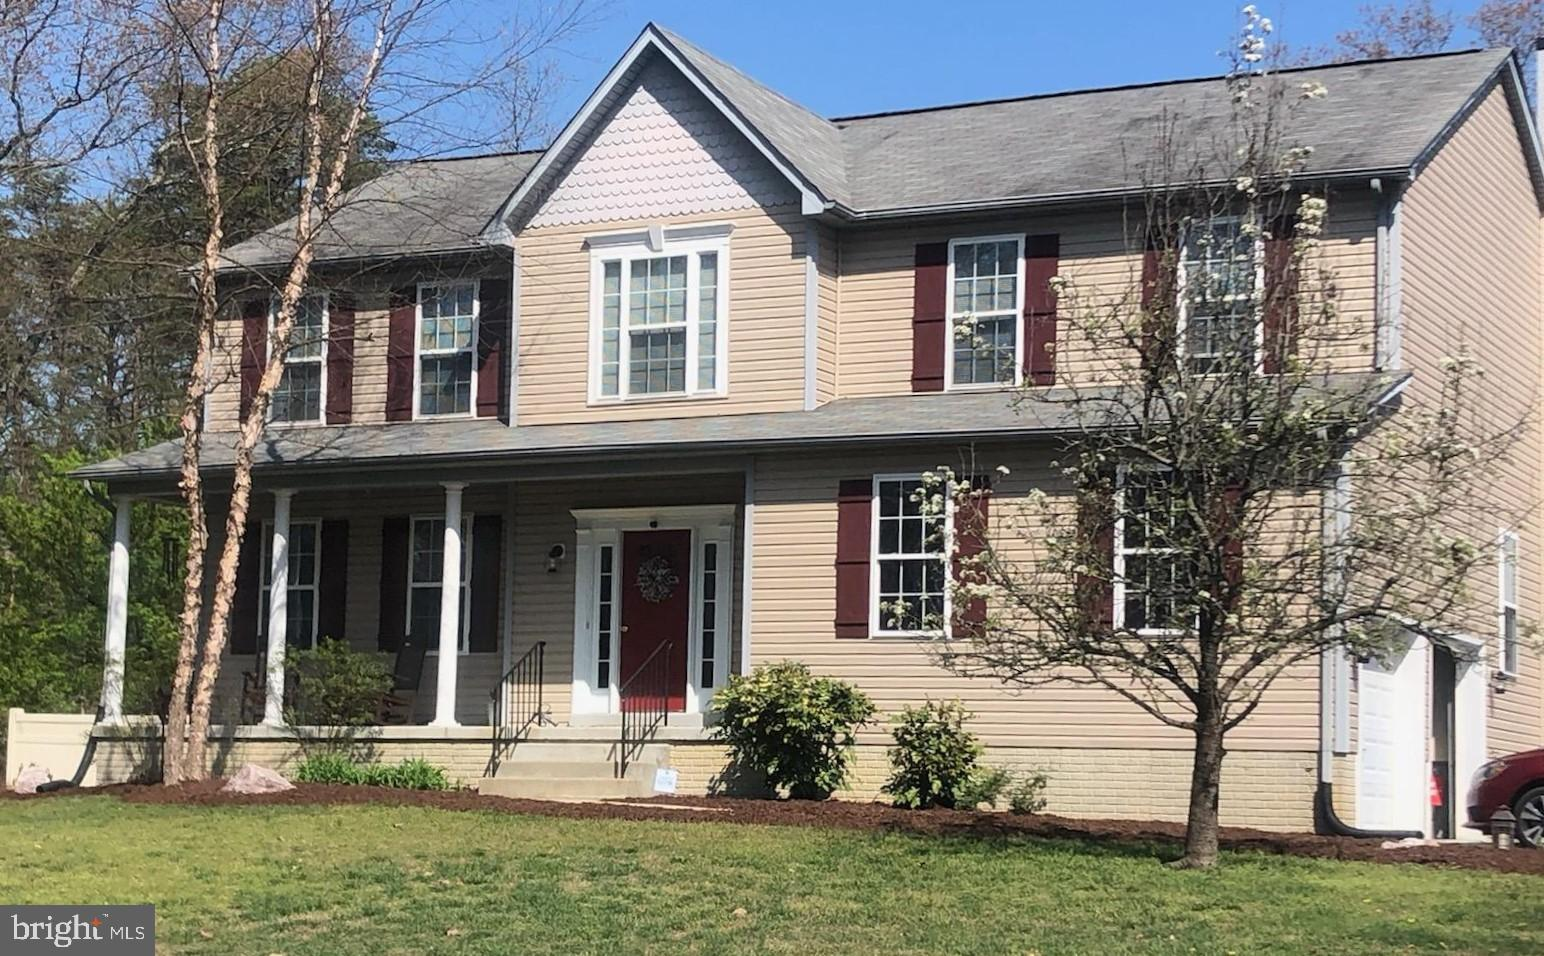 8250 BLOSSOM POINT ROAD, WELCOME, MD 20693